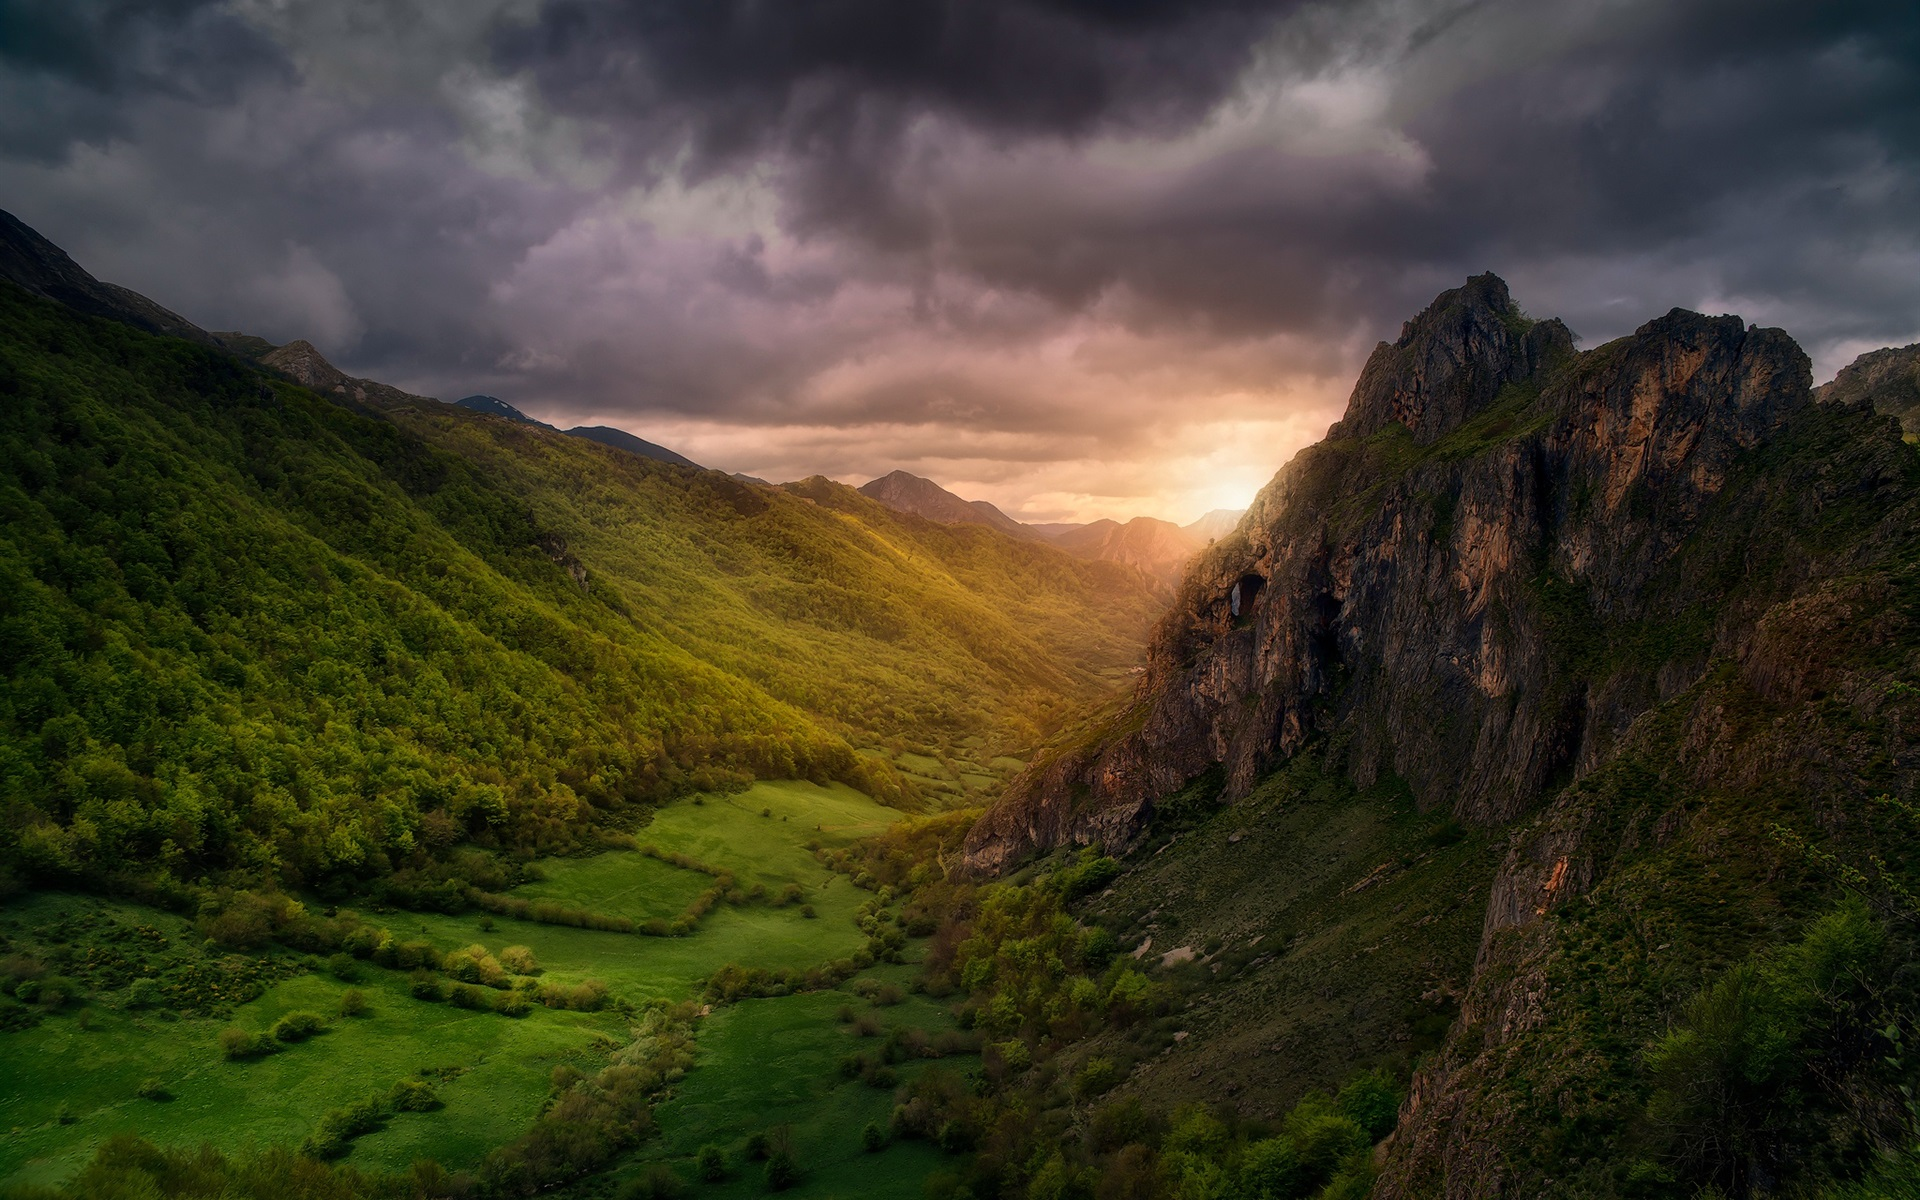 Wallpaper Beautiful Nature Landscape Clouds Valley Mountains